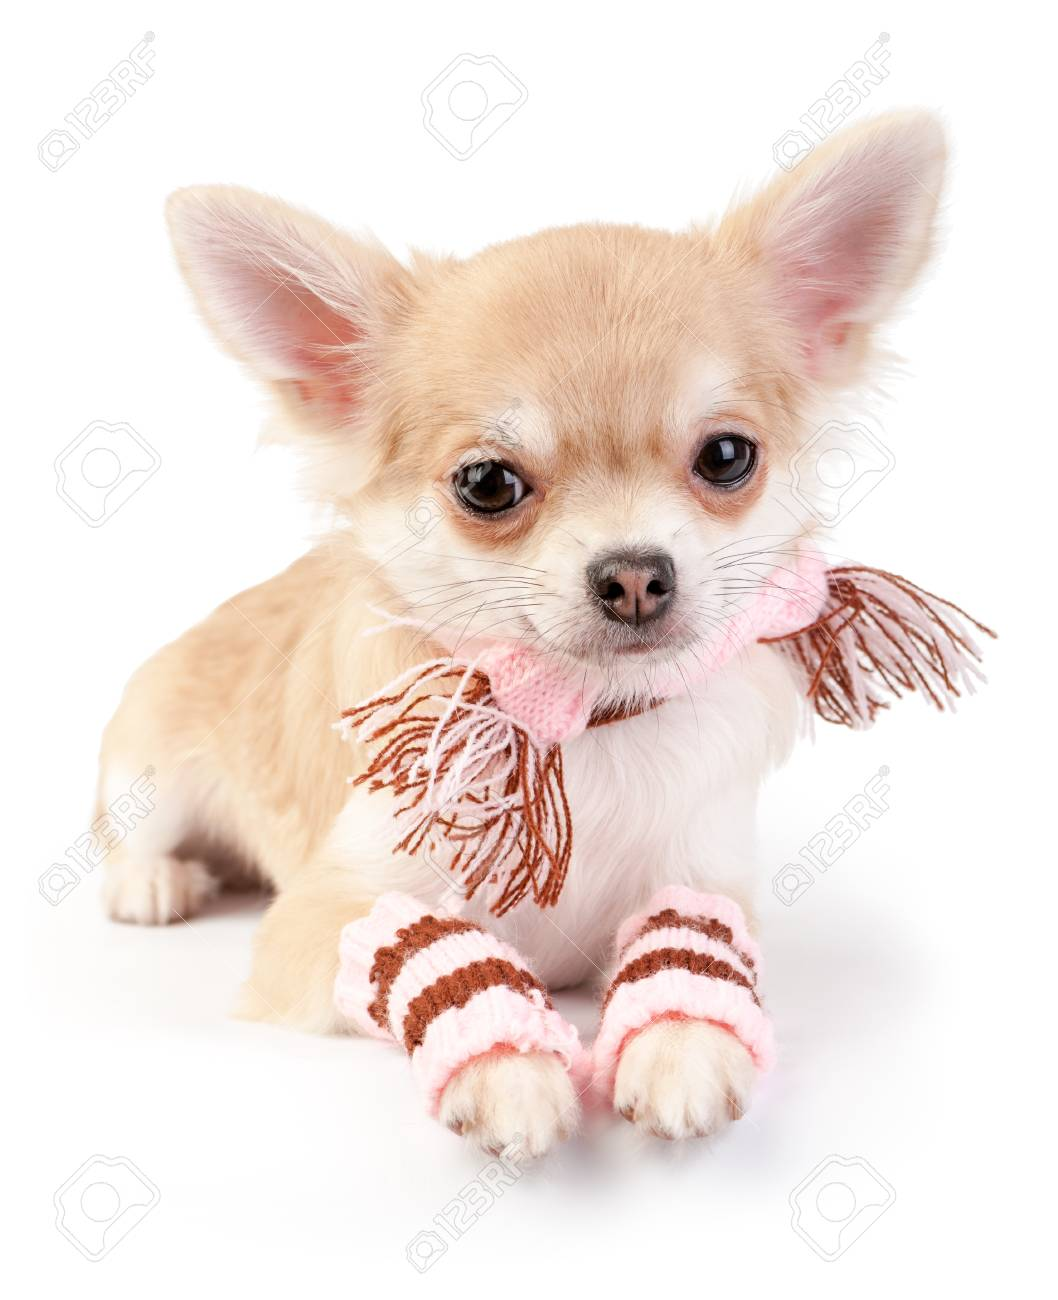 05fa6eaa6d36e cute chihuahua puppy with woolen scarf and striped leggings lying down on  white background Stock Photo